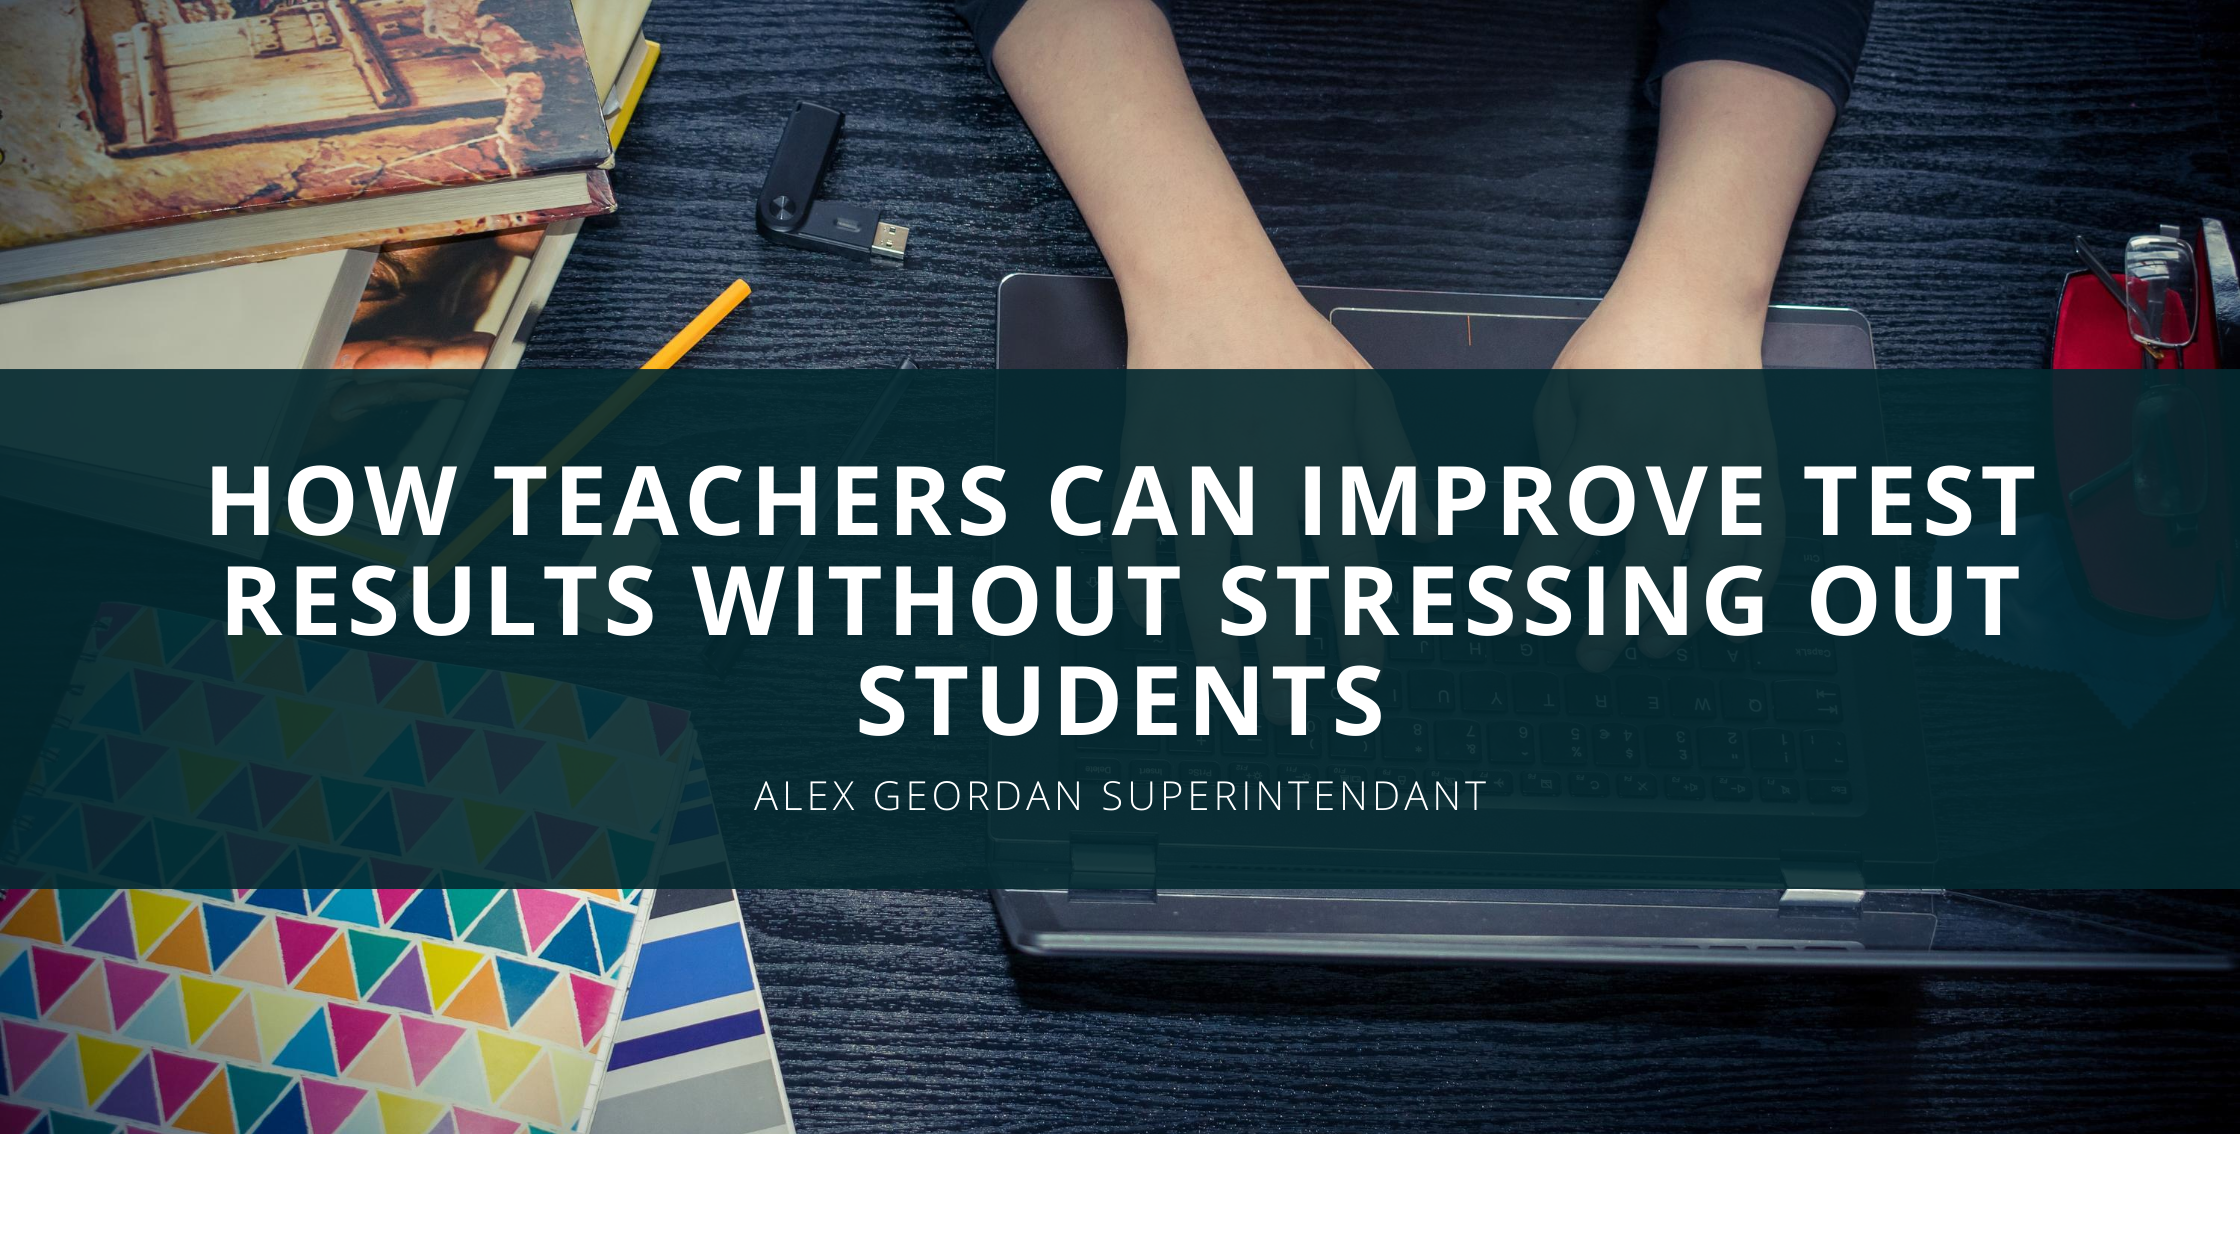 Alex Geordan, Superintendent Shares How Teachers Can Improve Test Results Without Stressing Out Students